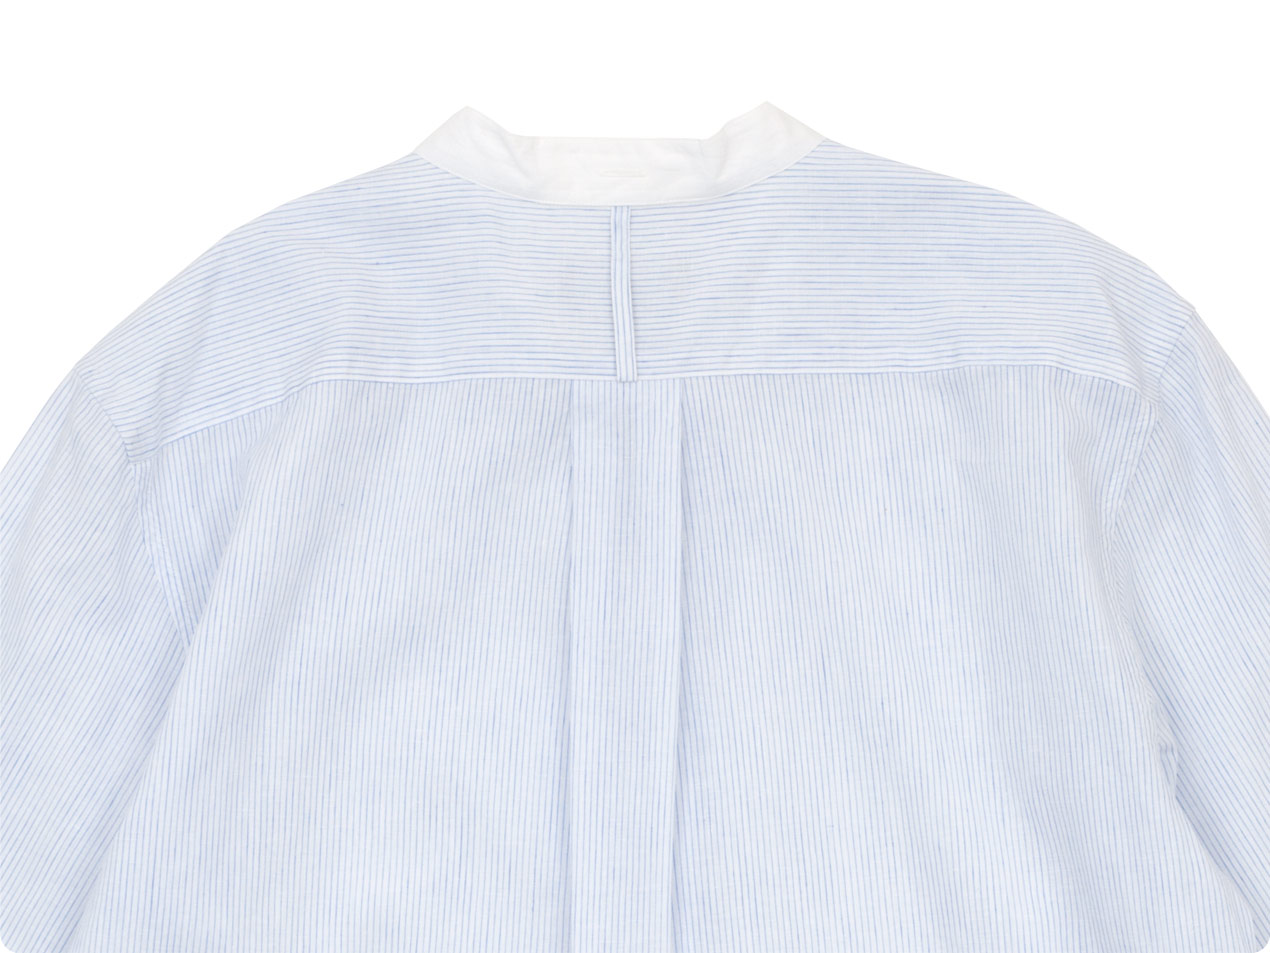 MARGARET HOWELL FINE STRIPE COTTON LINEN P/O SHIRTS